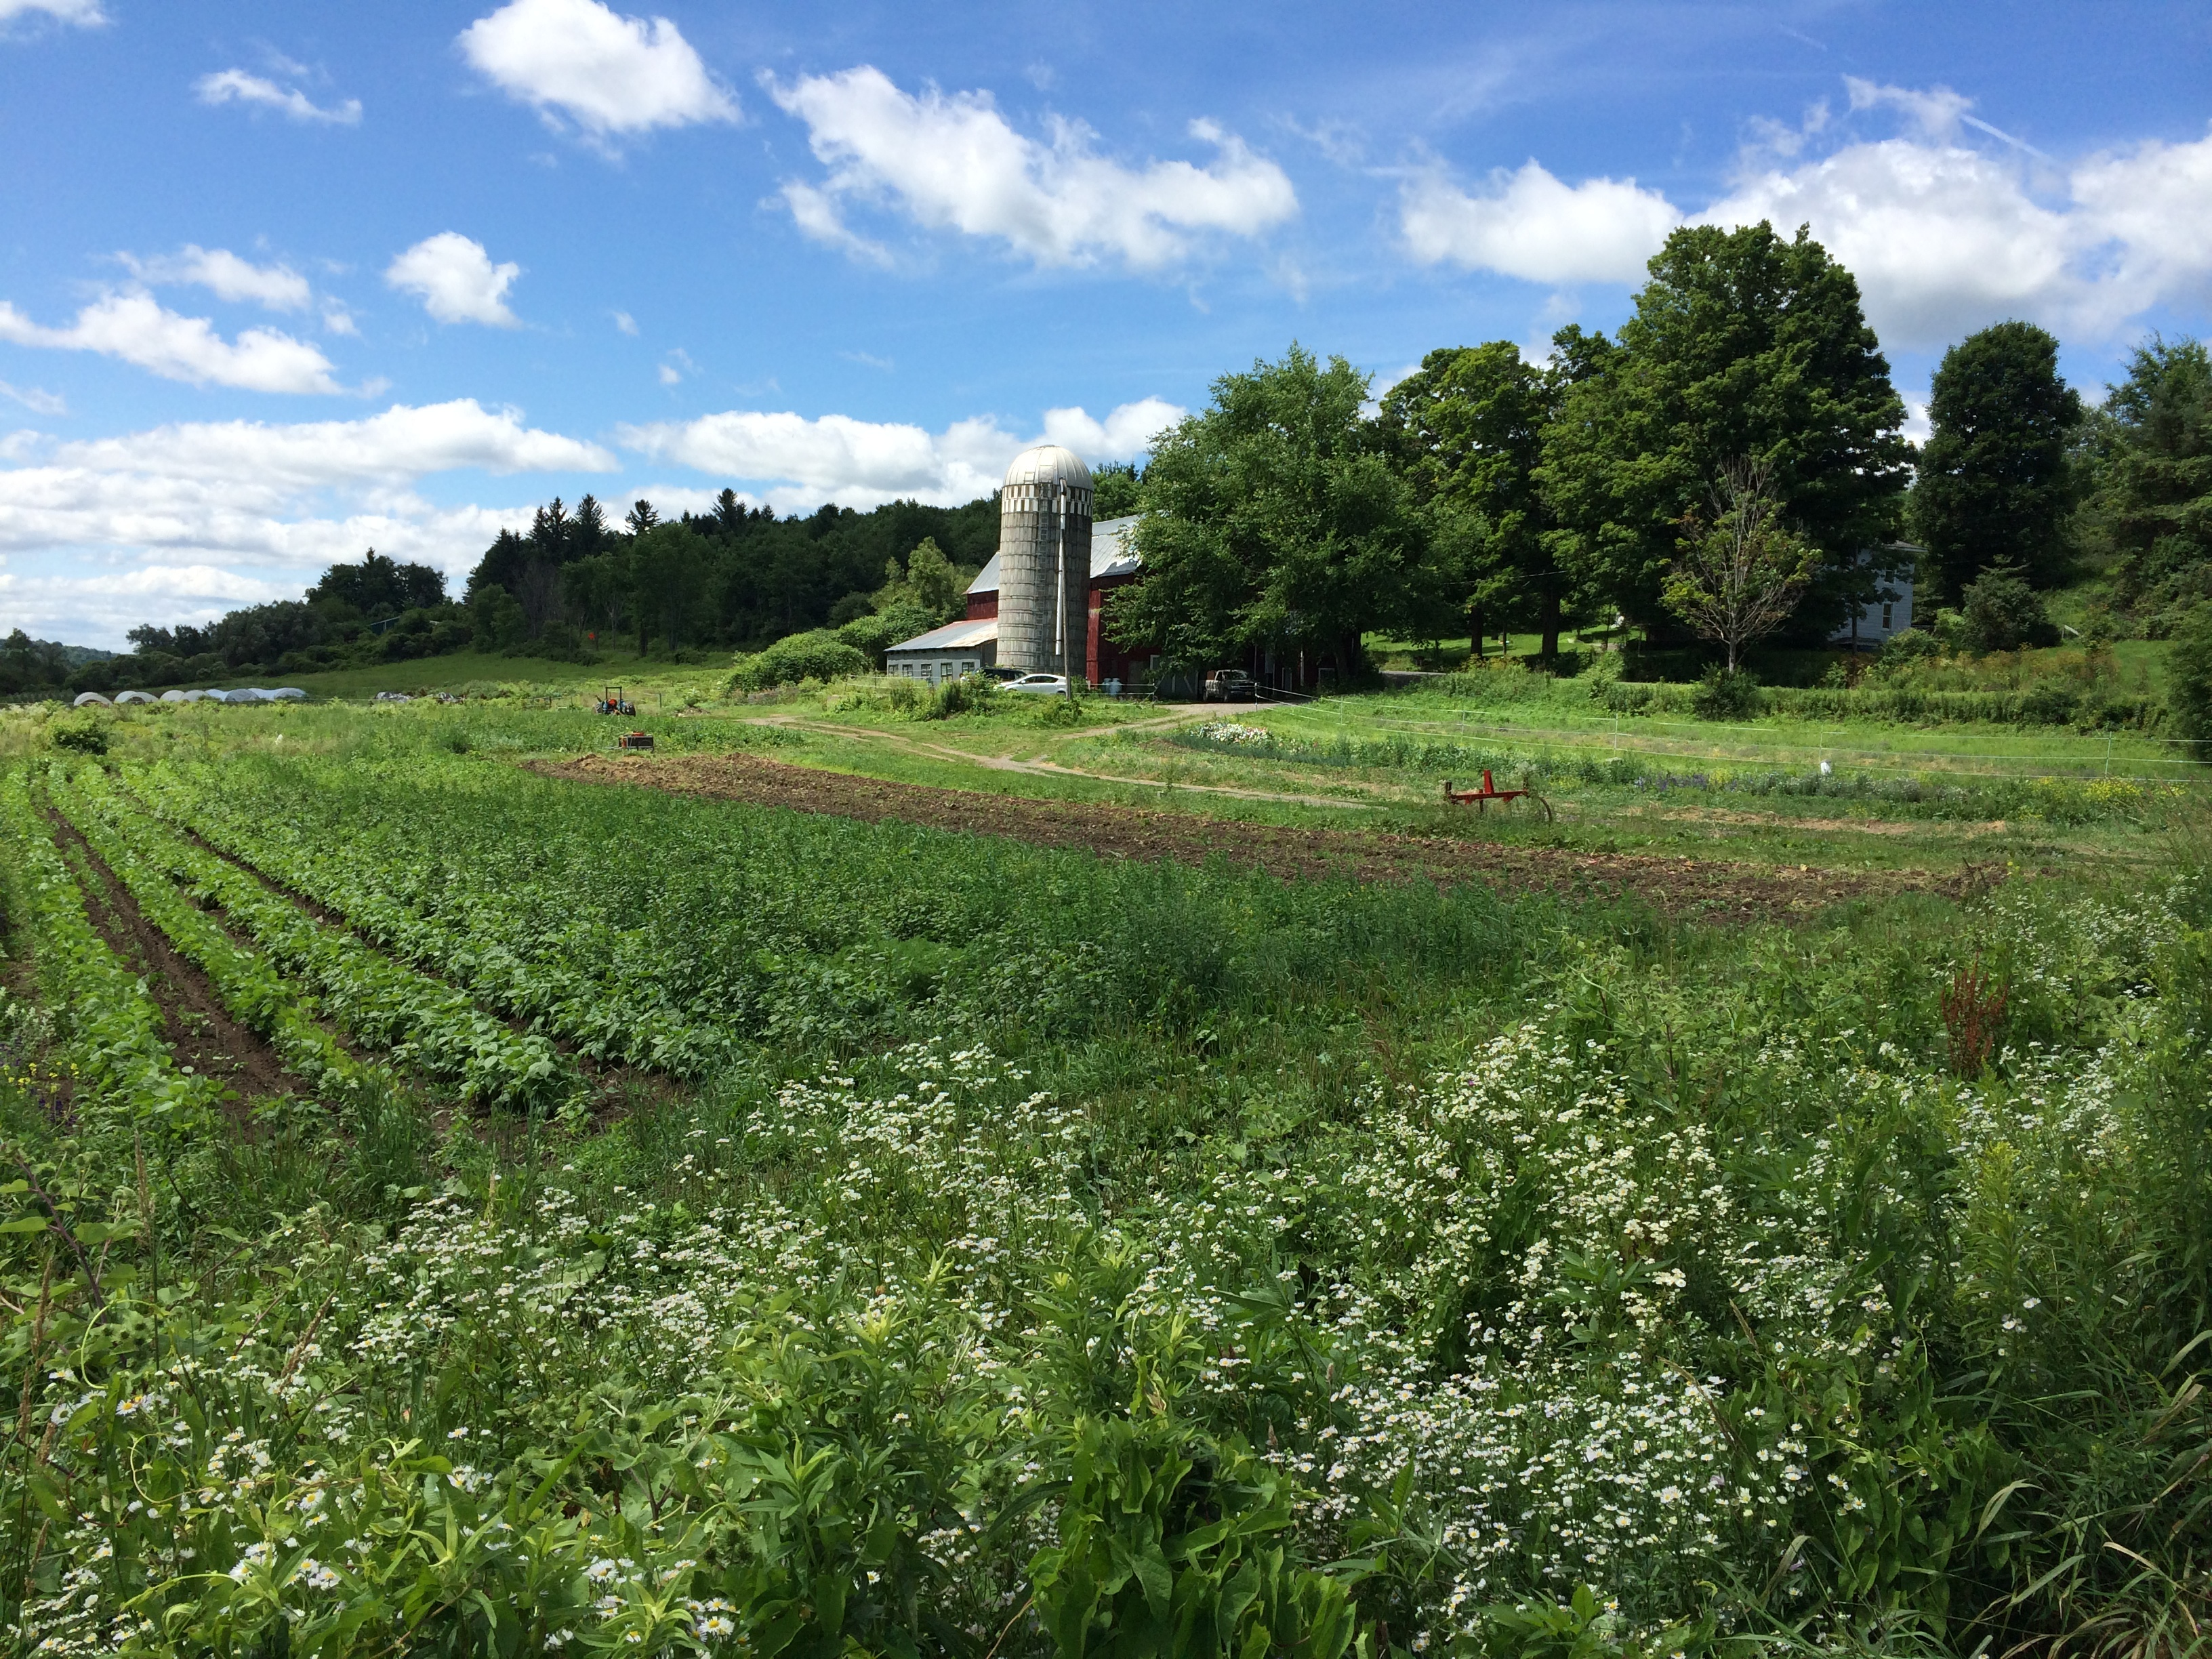 Cornell's Climate Smart Farming program: Helping Farmers Respond to Climate Change